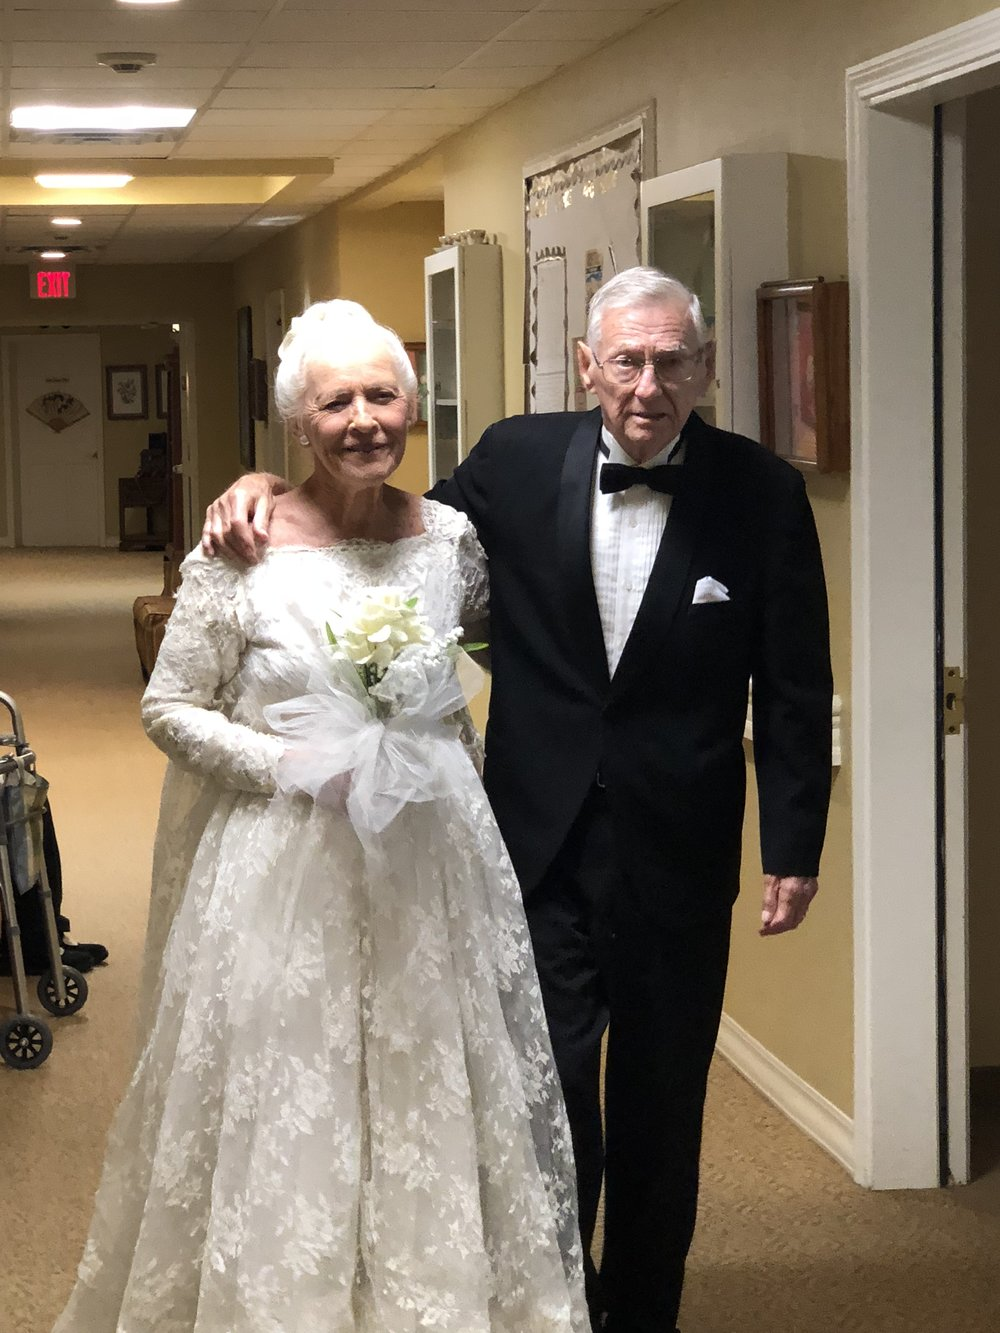 Charlie's bride in the same wedding dress she wore 60 years ago.